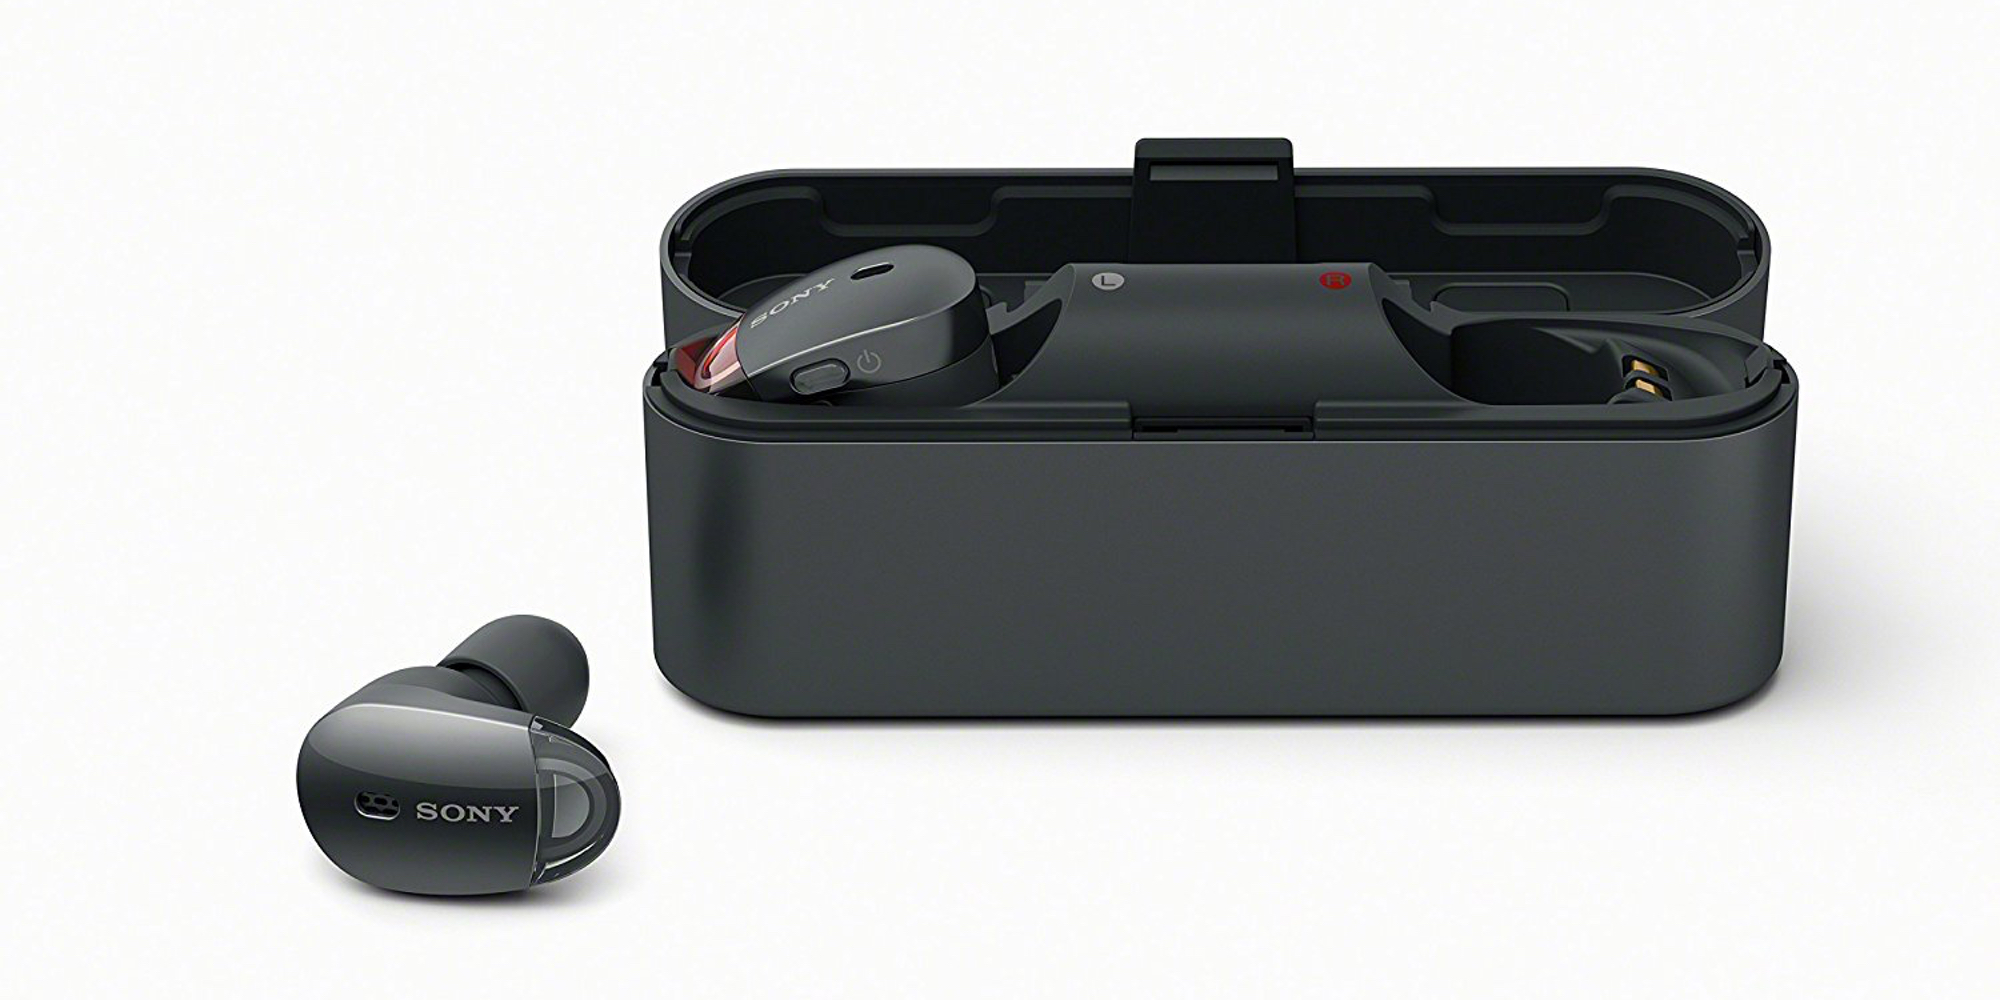 Sony's true-wireless earbuds offer noise cancellation, more at $158 shipped (20% off)